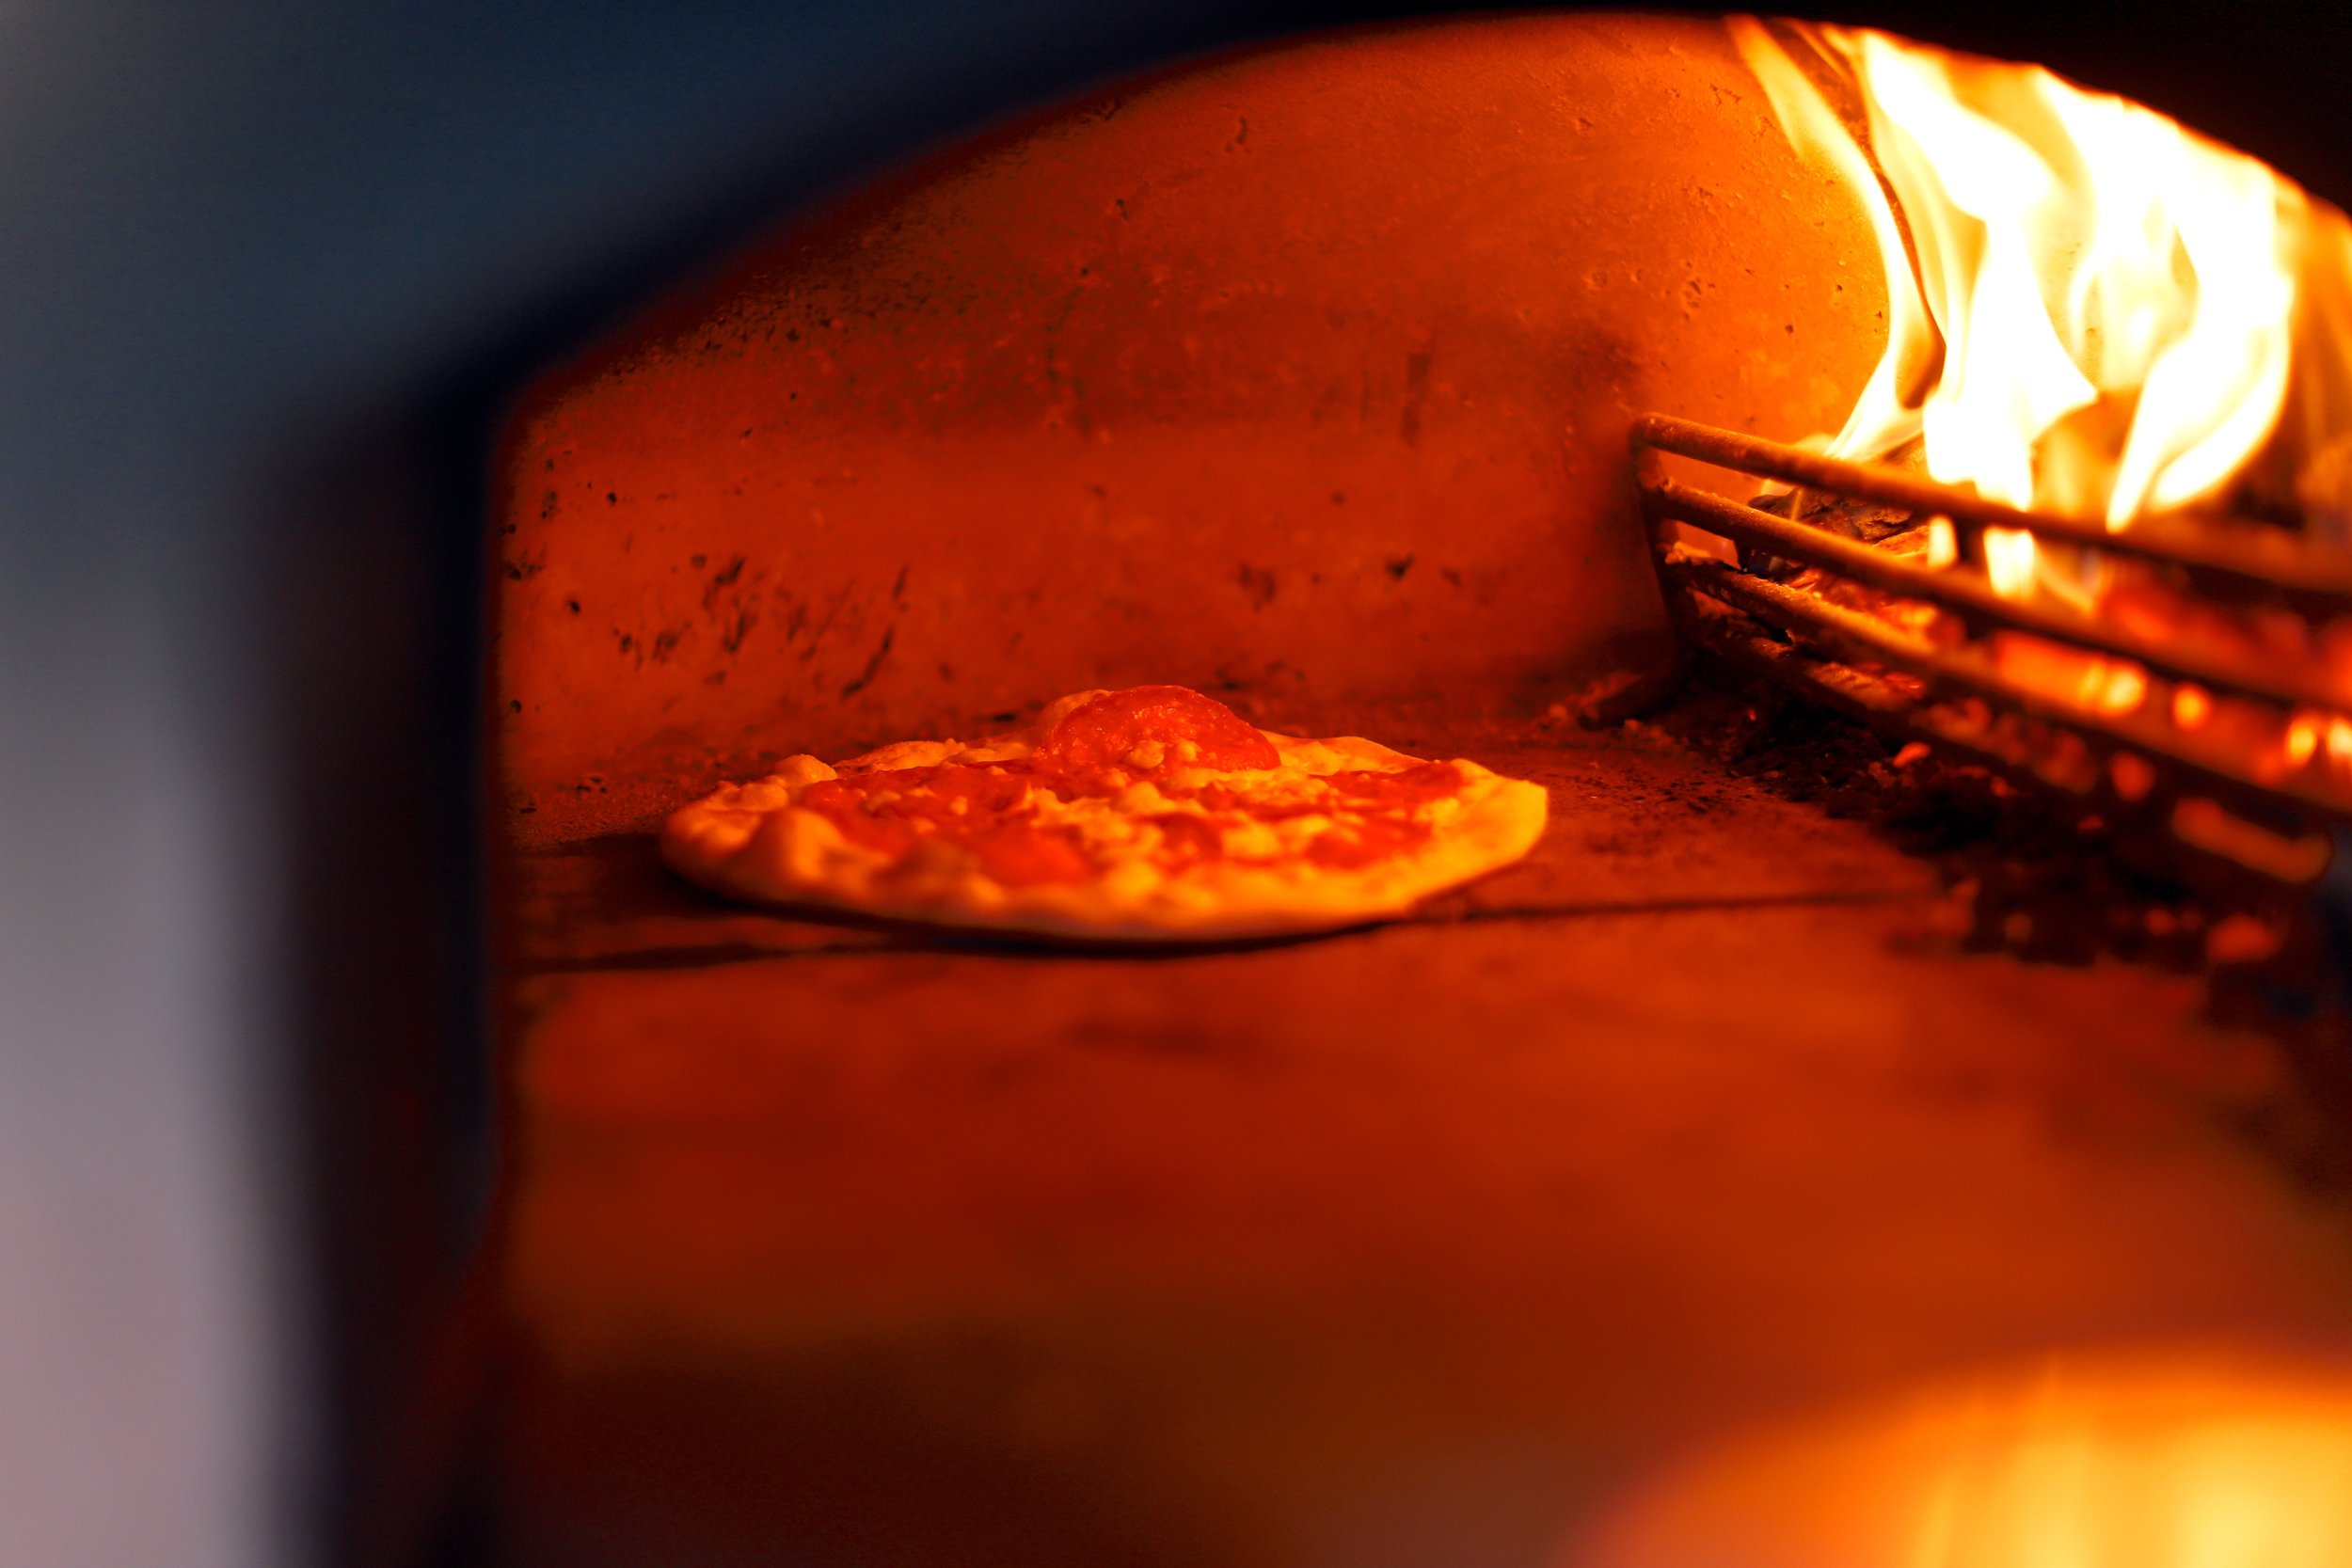 Wood-Fired Pizza - Our friends at Flamin Grate popup in our kitchen Wednesday-Saturday, serving made-to-order pizza cooked in their wood-fired oven. Meat, veggie, vegan and gluten free options are all available here.